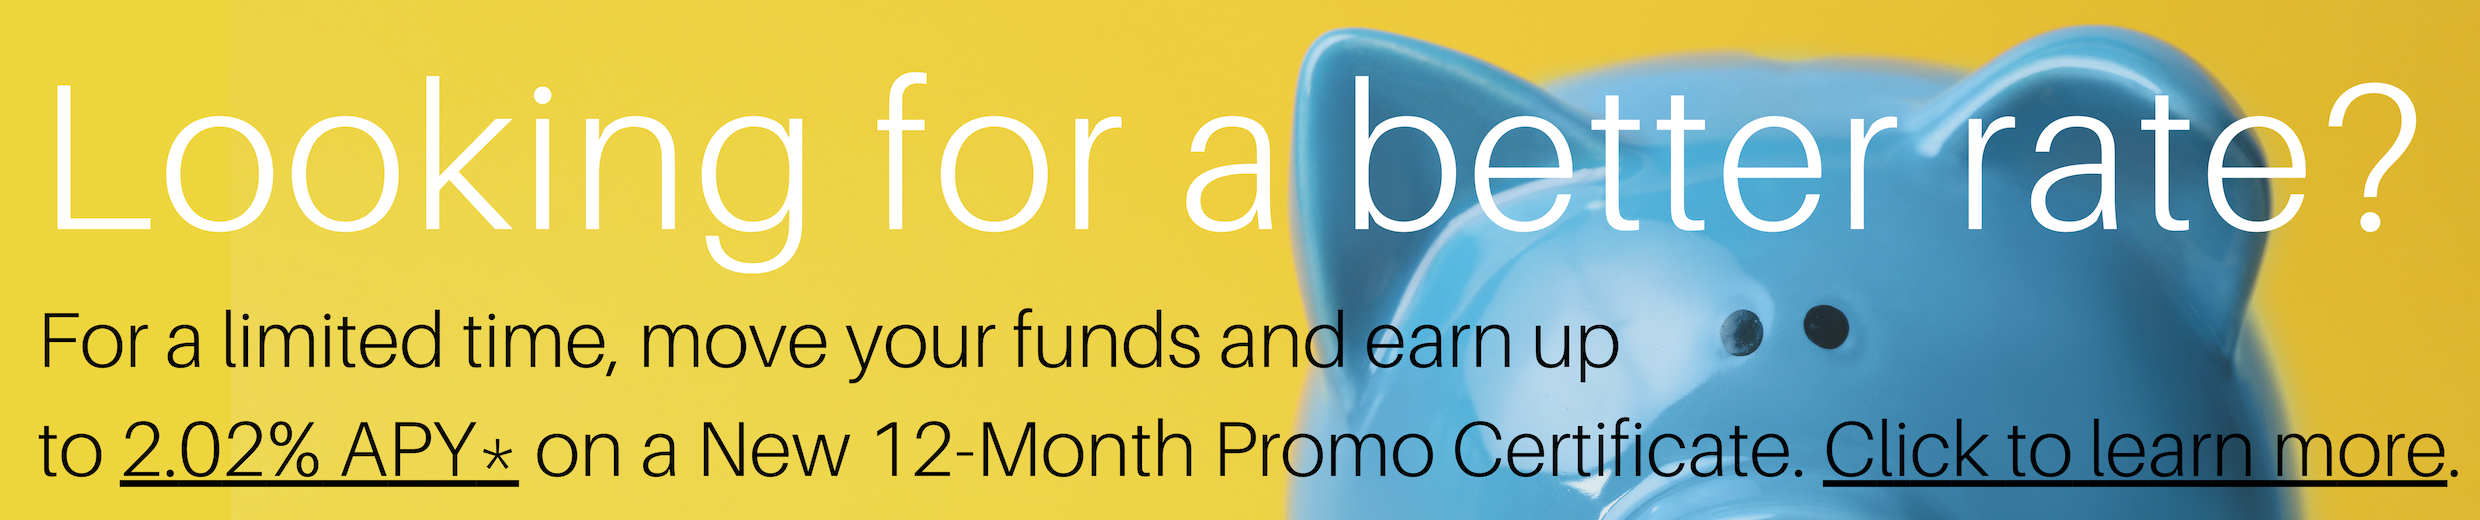 12 Month Promo Certificate Banner